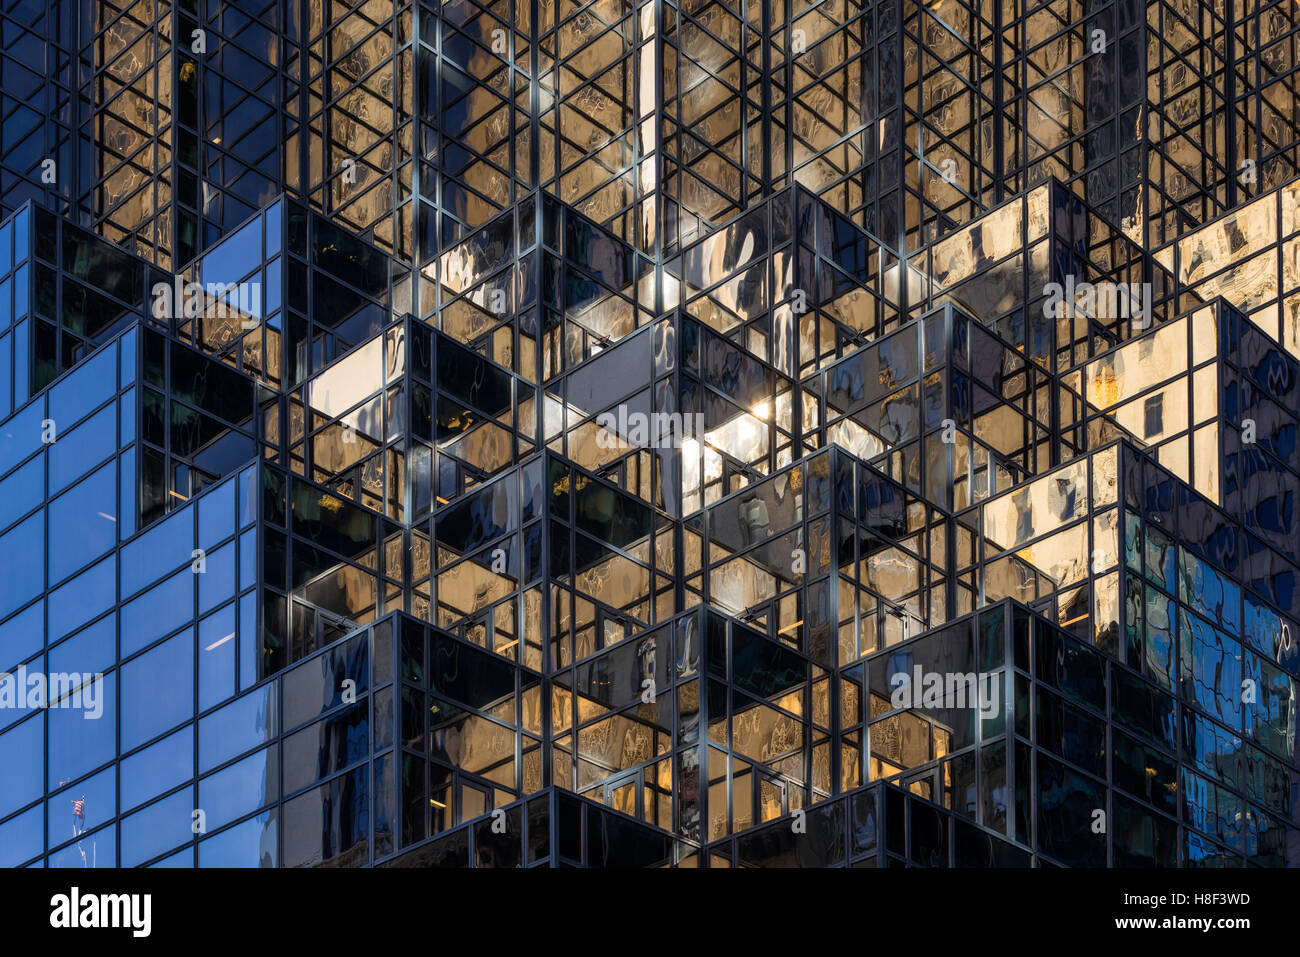 Architectural detail of the facade of Trump Tower with glass windows and terraces. Midtown Manhattan, New York City - Stock Image